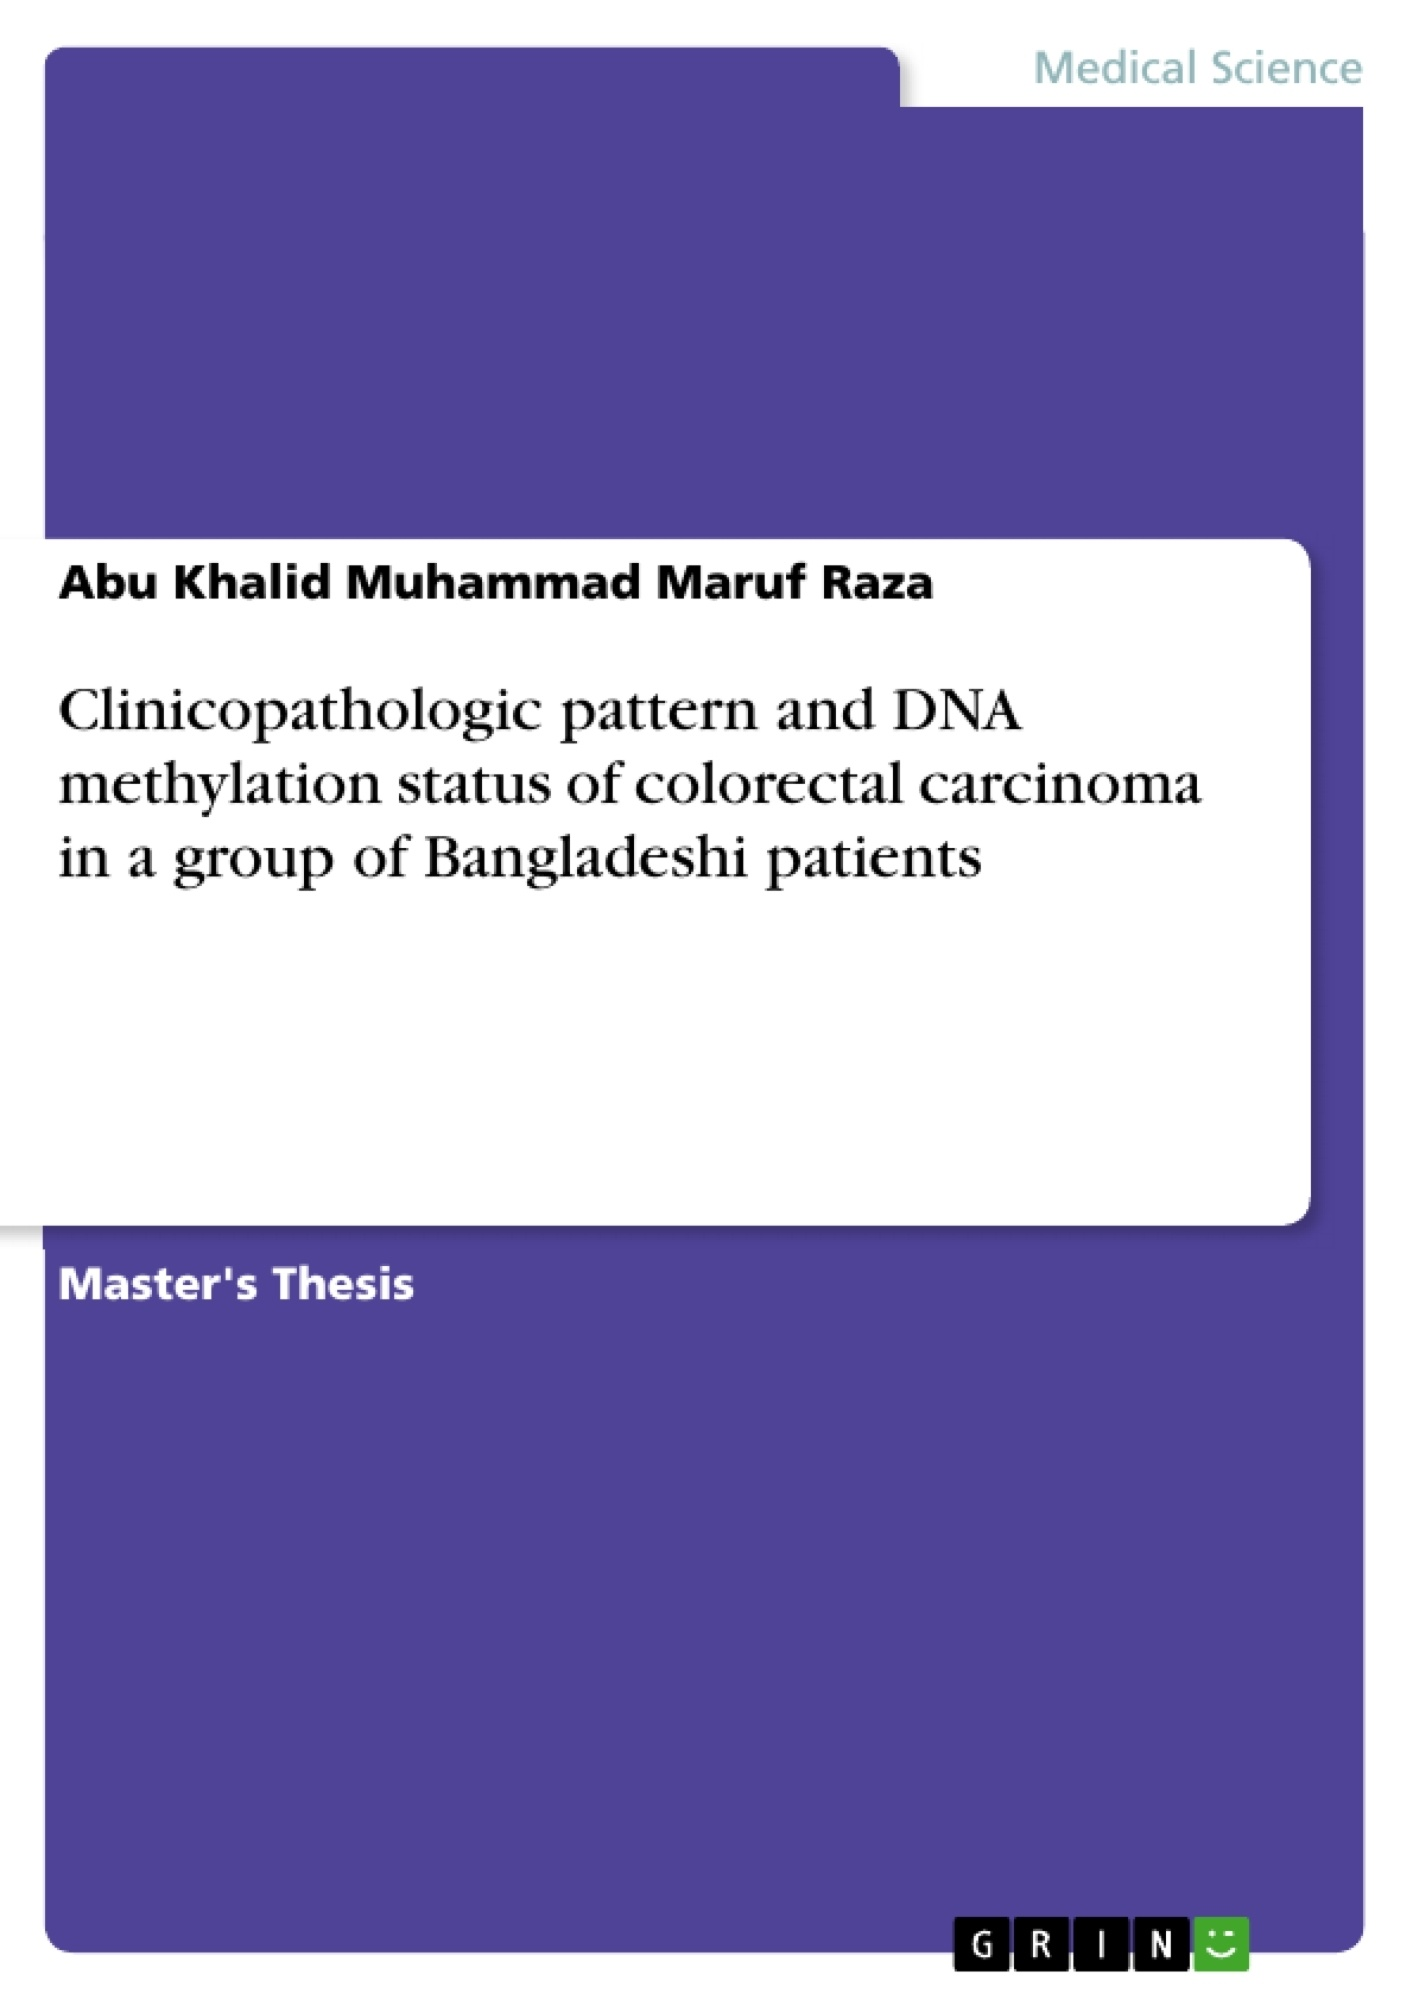 Title: Clinicopathologic pattern and DNA methylation status of colorectal carcinoma in a group of Bangladeshi patients